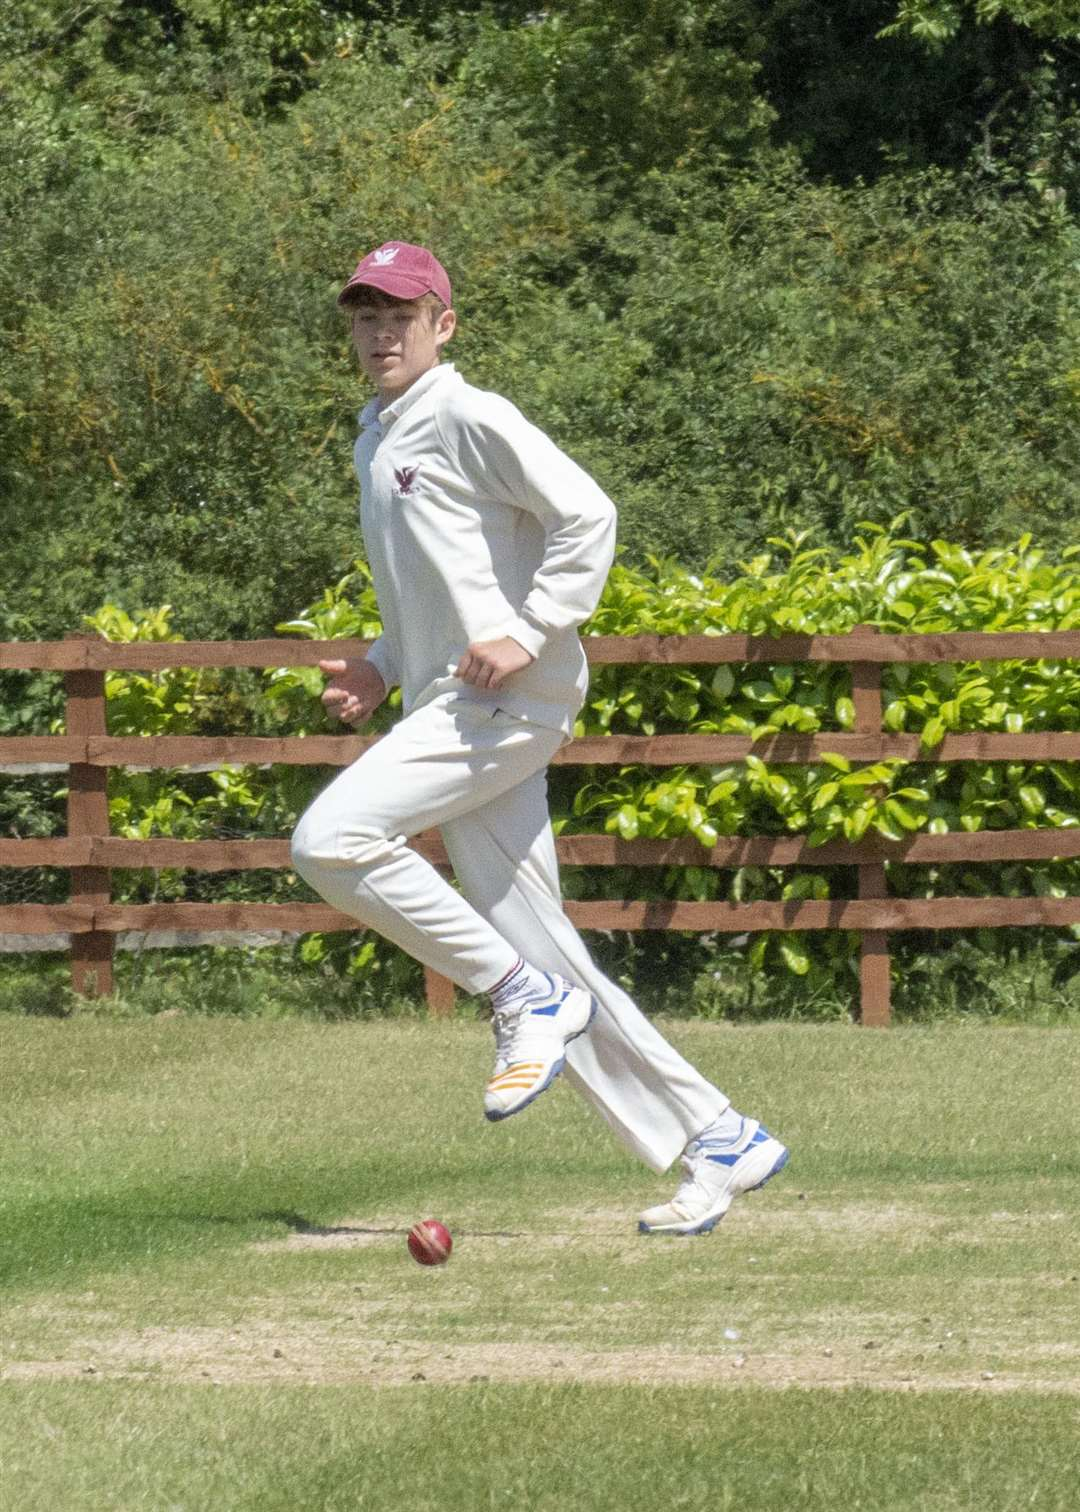 Ketton Sports 2nds v Nassington 2nds. Photo: Lee Hellwing (2715468)